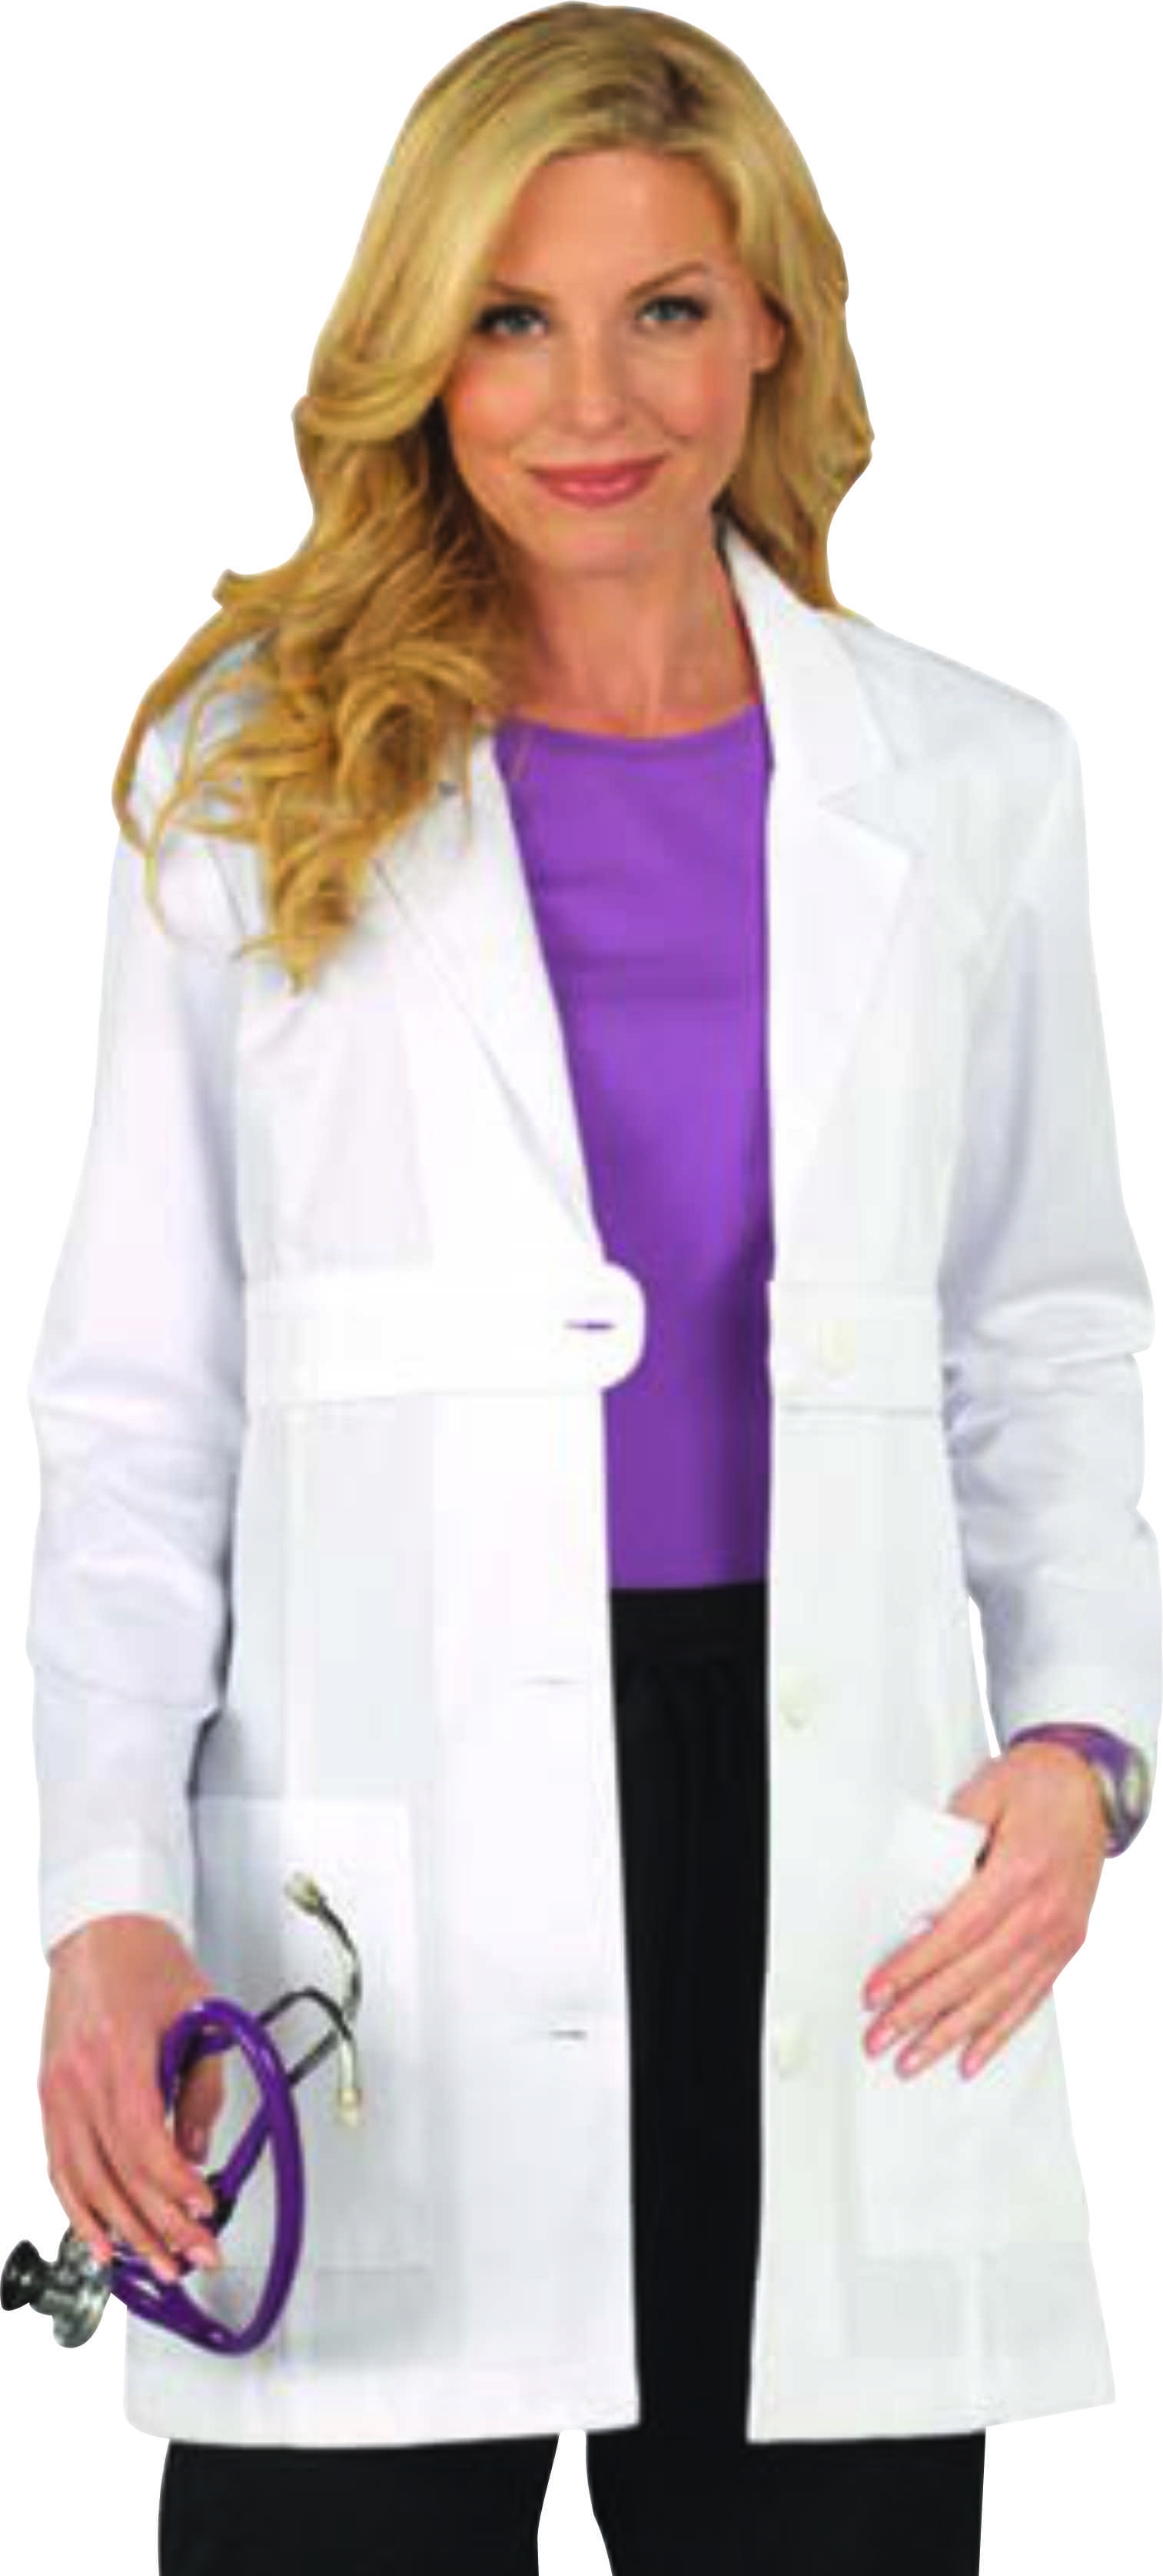 Womens Doctor Coat 02